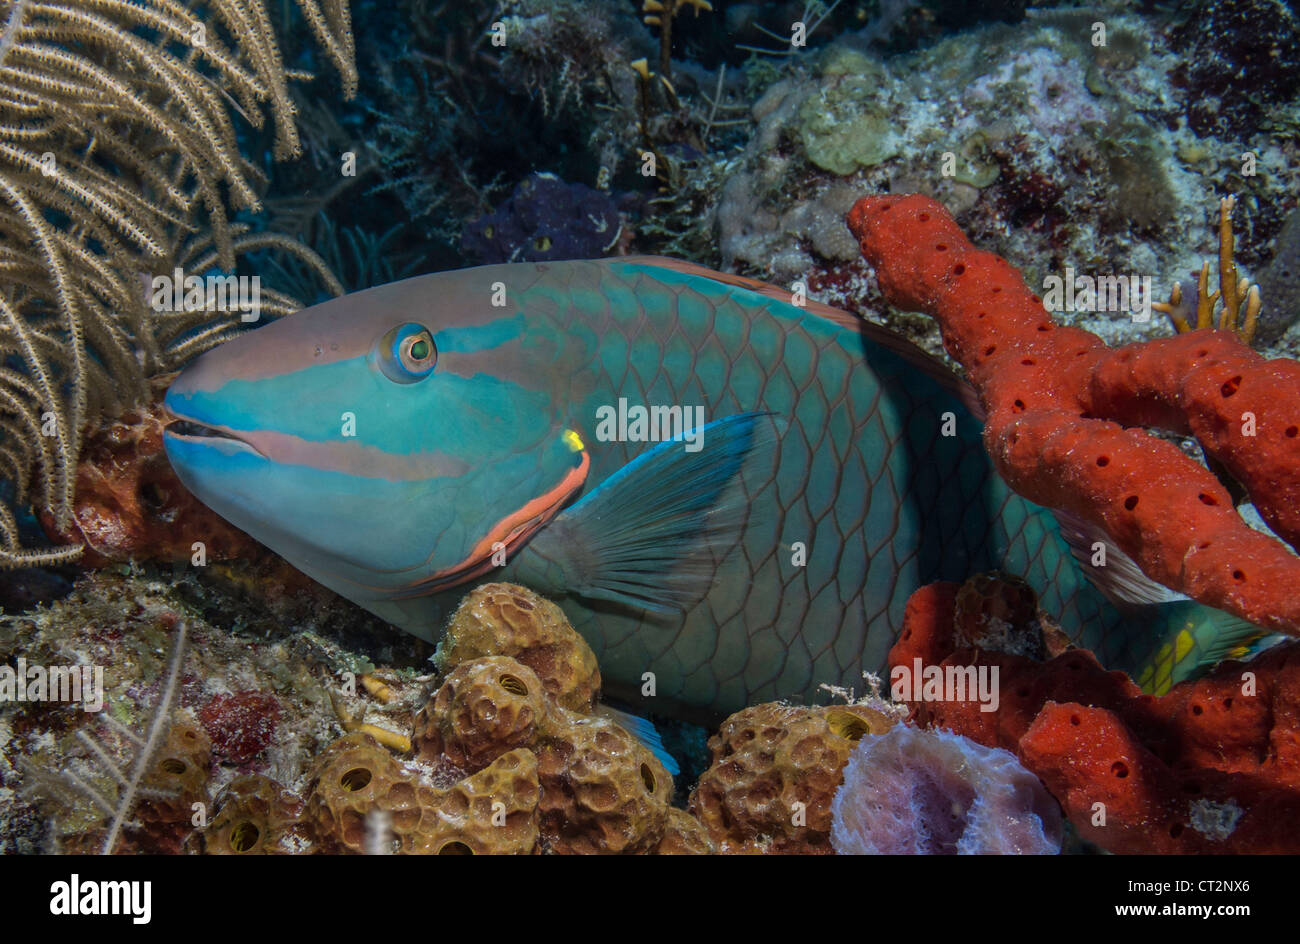 Stoplight Parrotfish resting amid corals and sponges - Stock Image